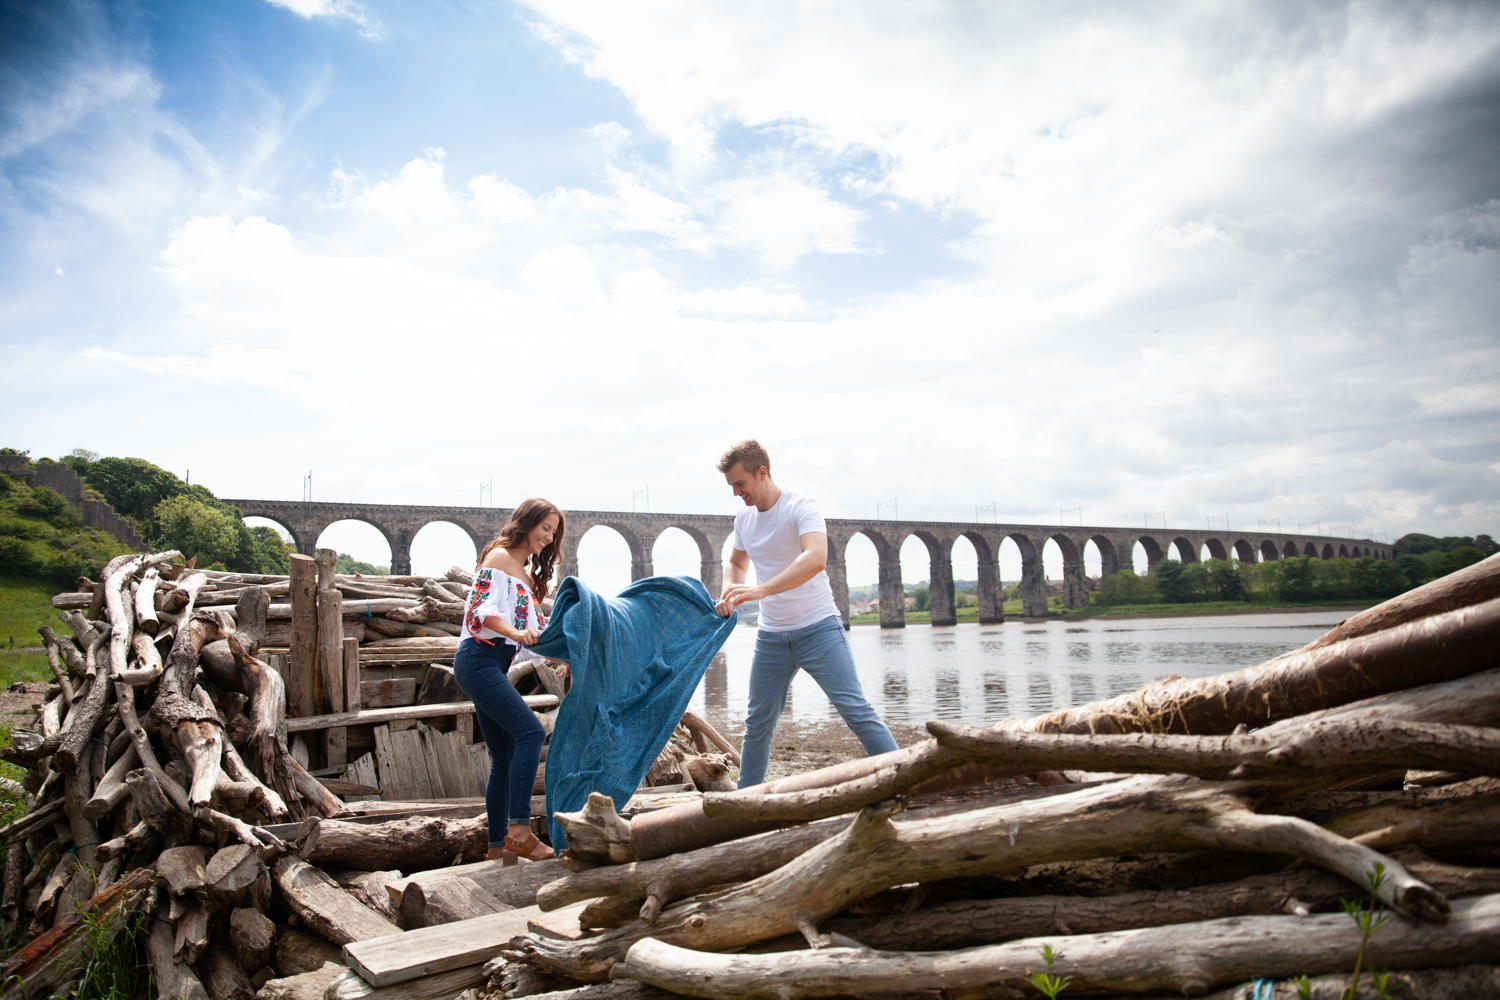 MICHAEL_ANNALISE_PRE-WEDDING_PHOTOSHOOT_BERWICK_PICTORIAL_PHOTOGRAPHY_COUPLE_RIVER_BOAT_RIVERSIDE_BRIDGES--1033.jpg